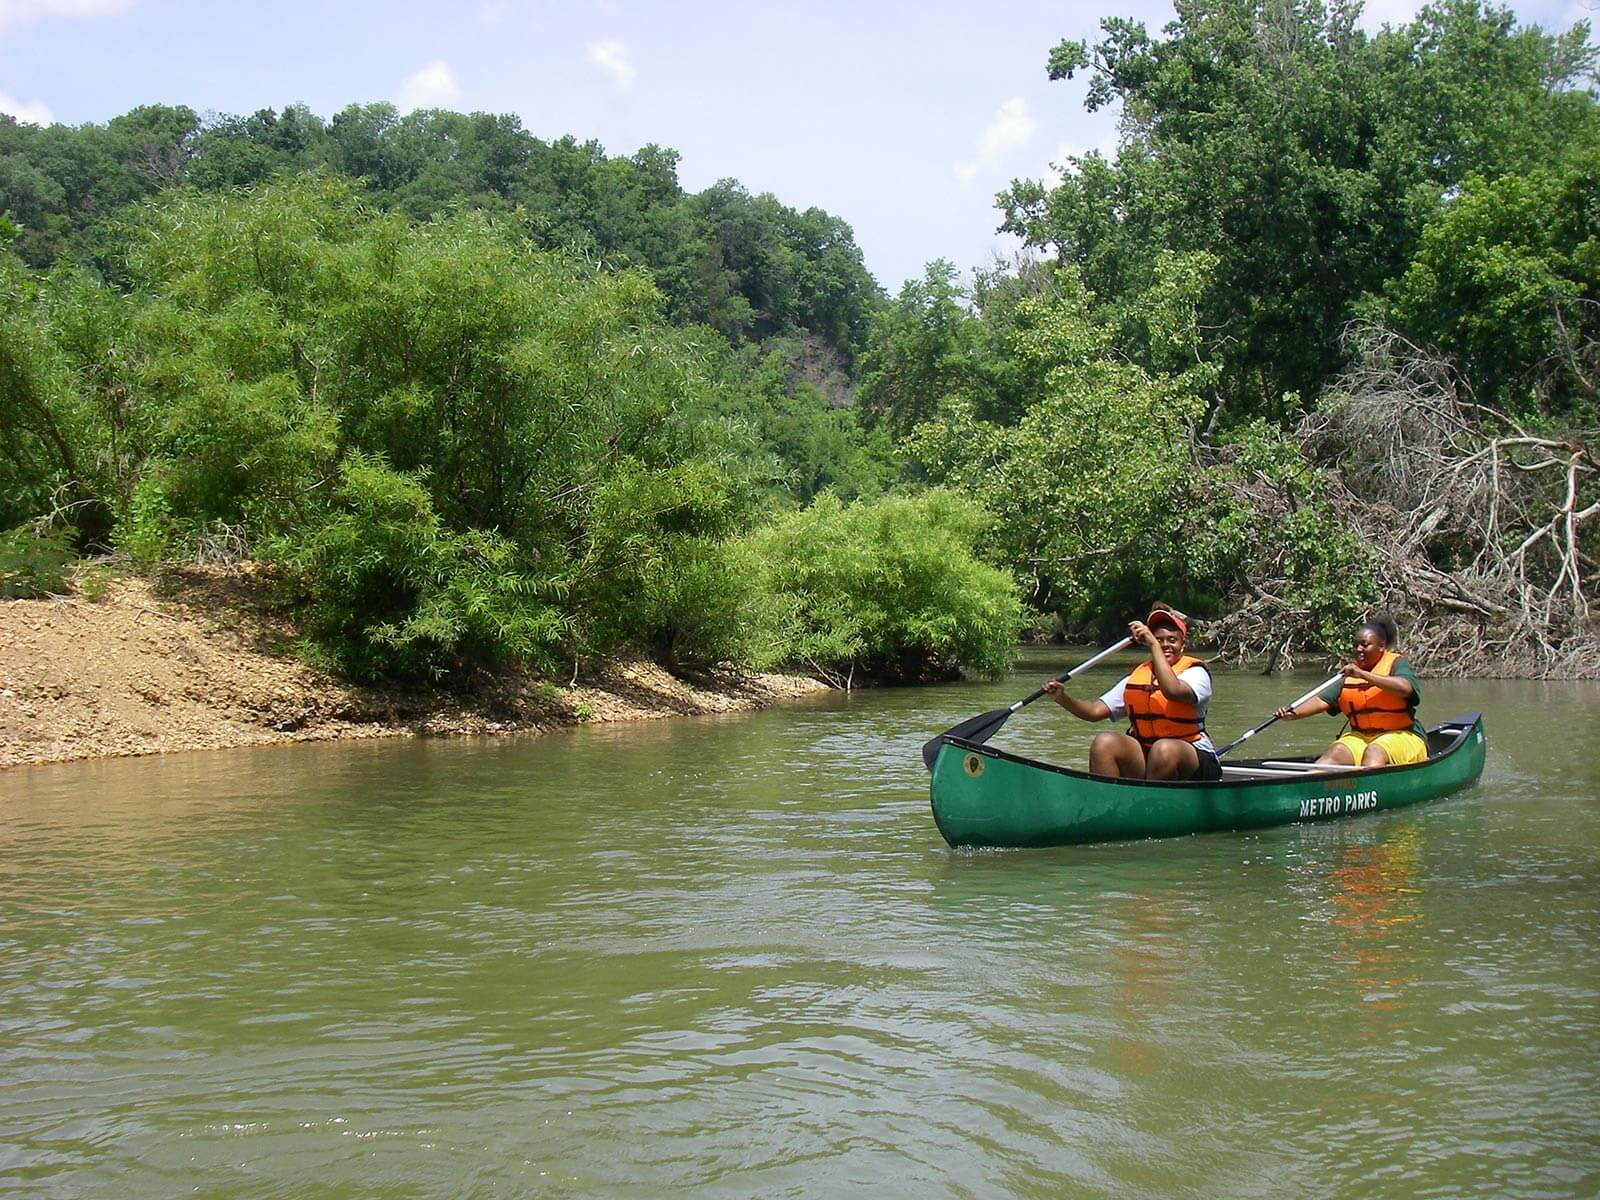 Community Center Trip on the Harpeth River